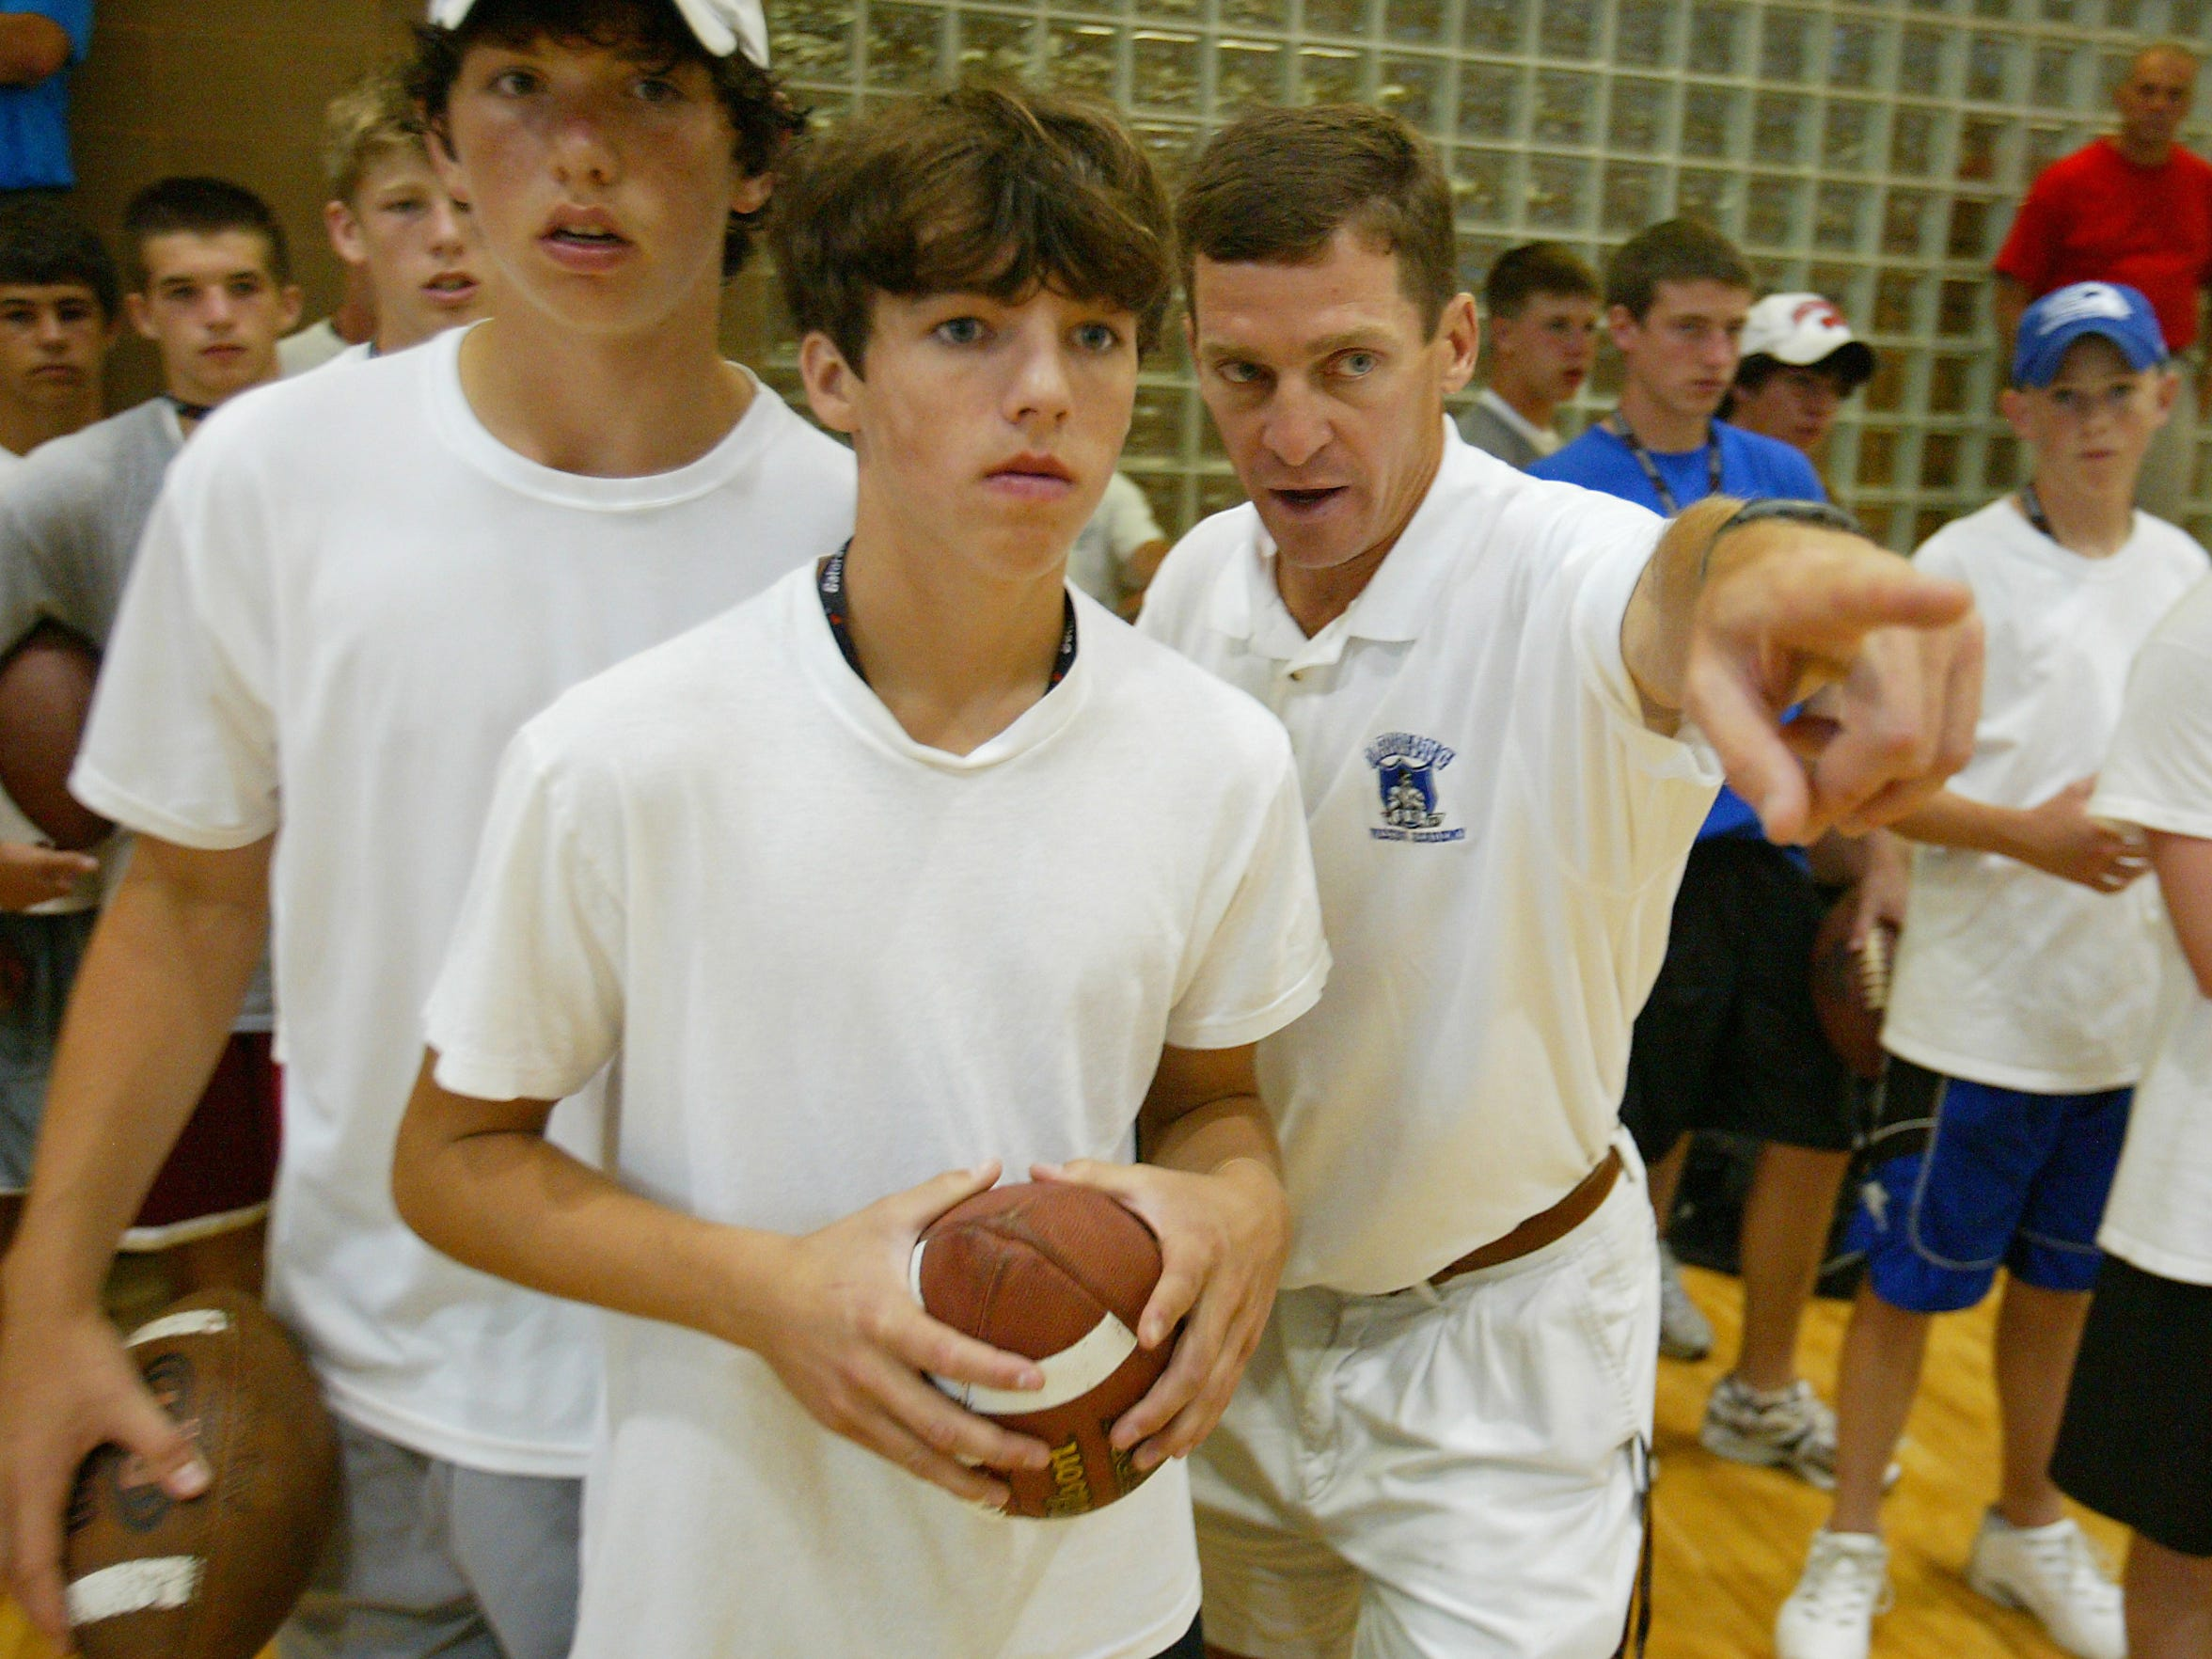 Andrew Luck, left, as an eighth grader at the Manning Passing Academy in 2004. Here, associate camp director Buddy Teevens, current head football coach at Dartmouth, instructs.